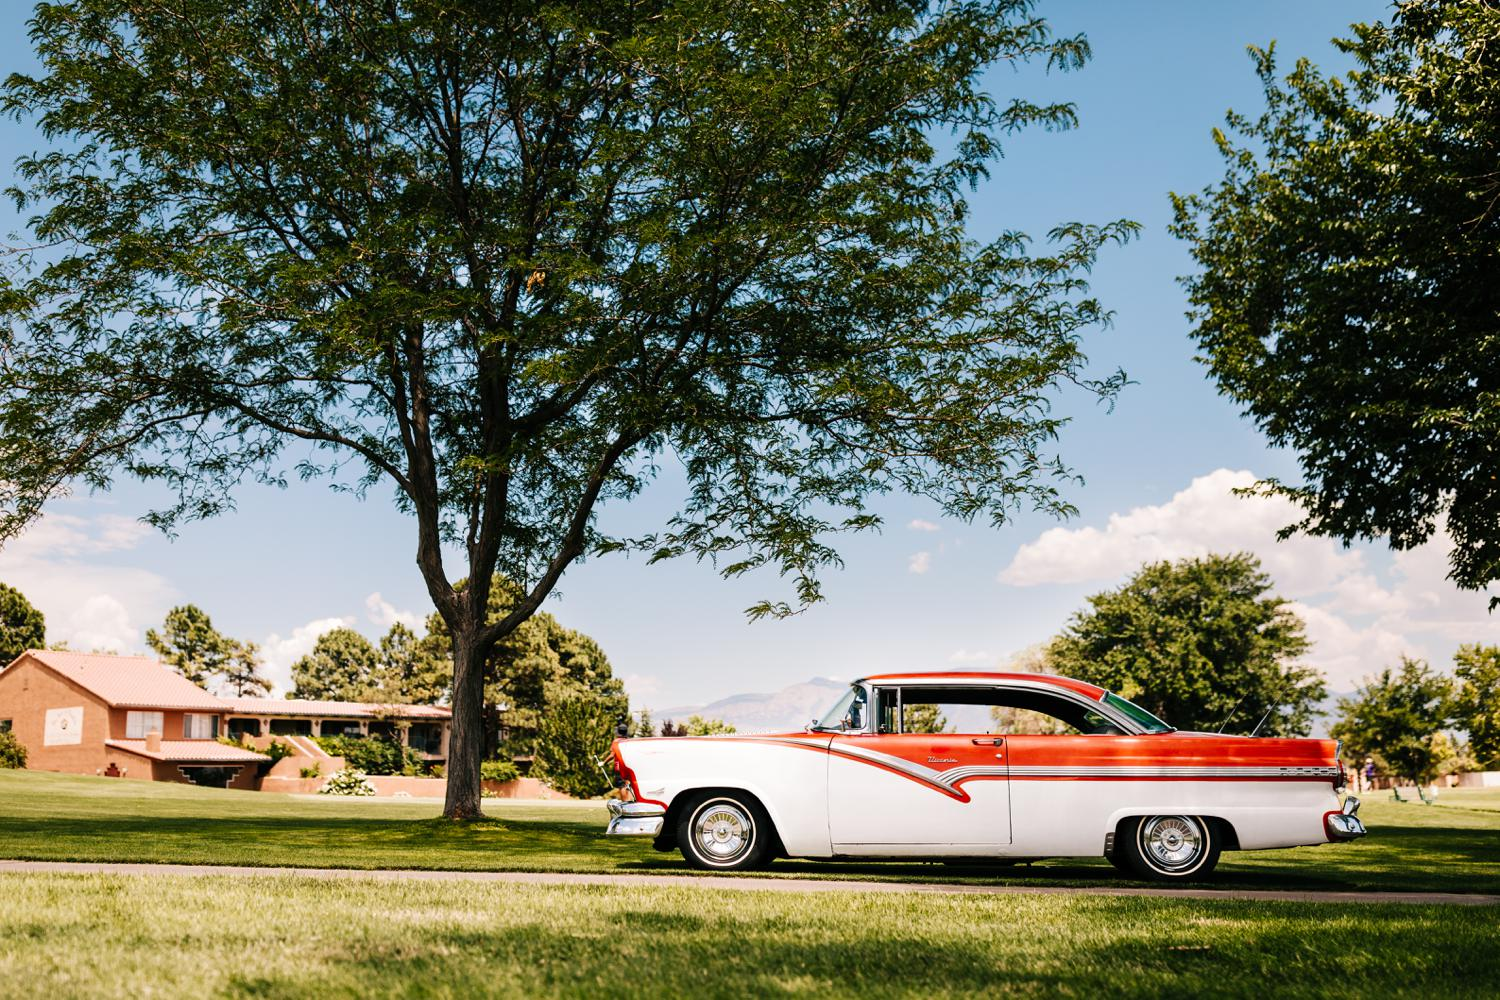 Vintage car for New Mexico themed wedding